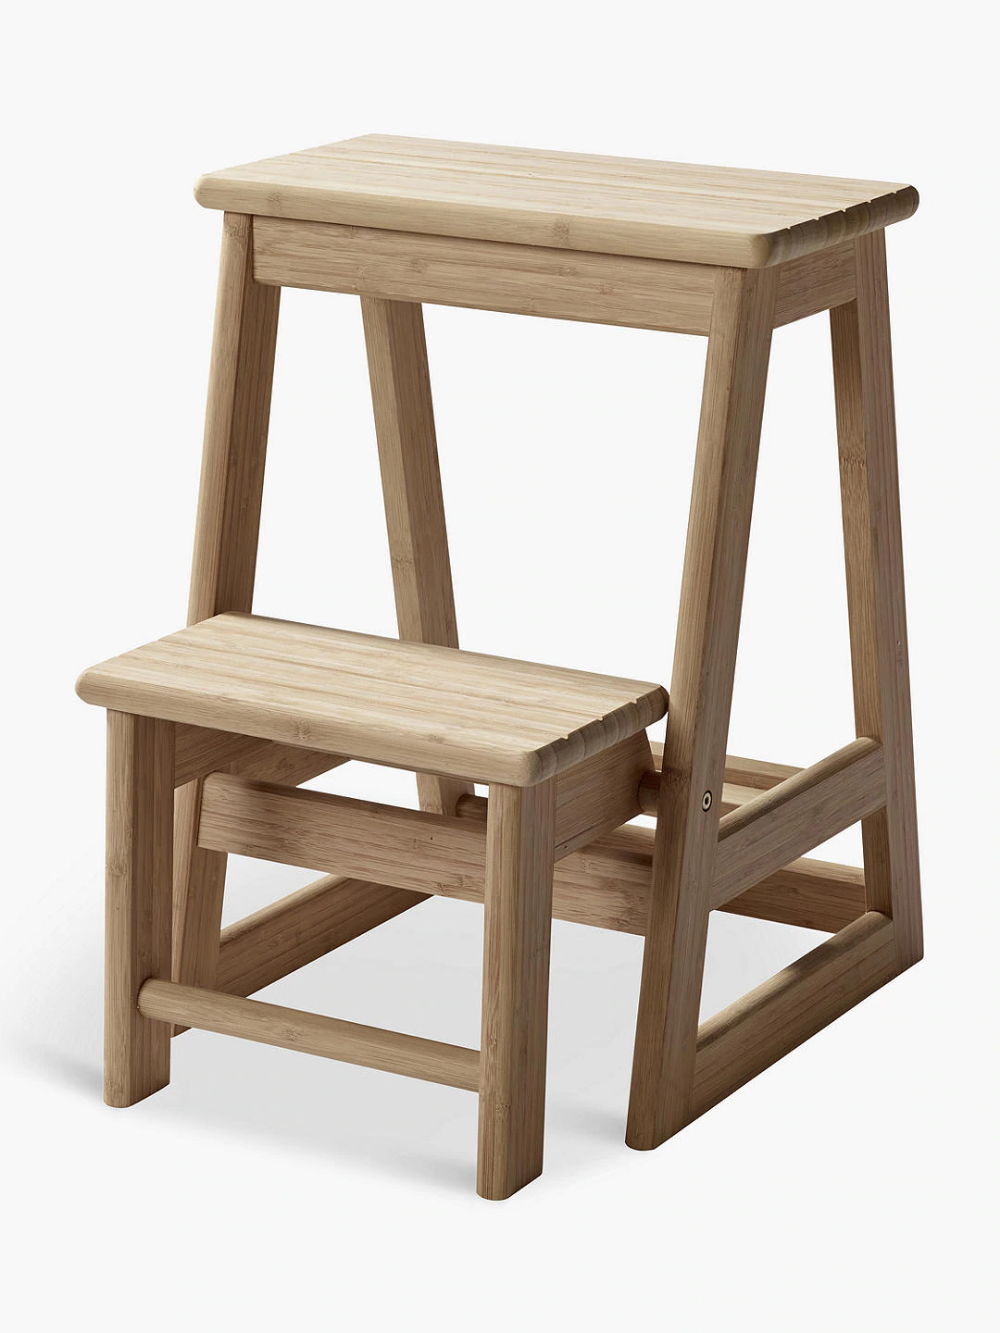 Bedside Step Stools For Adults: Bamboo Step Stool